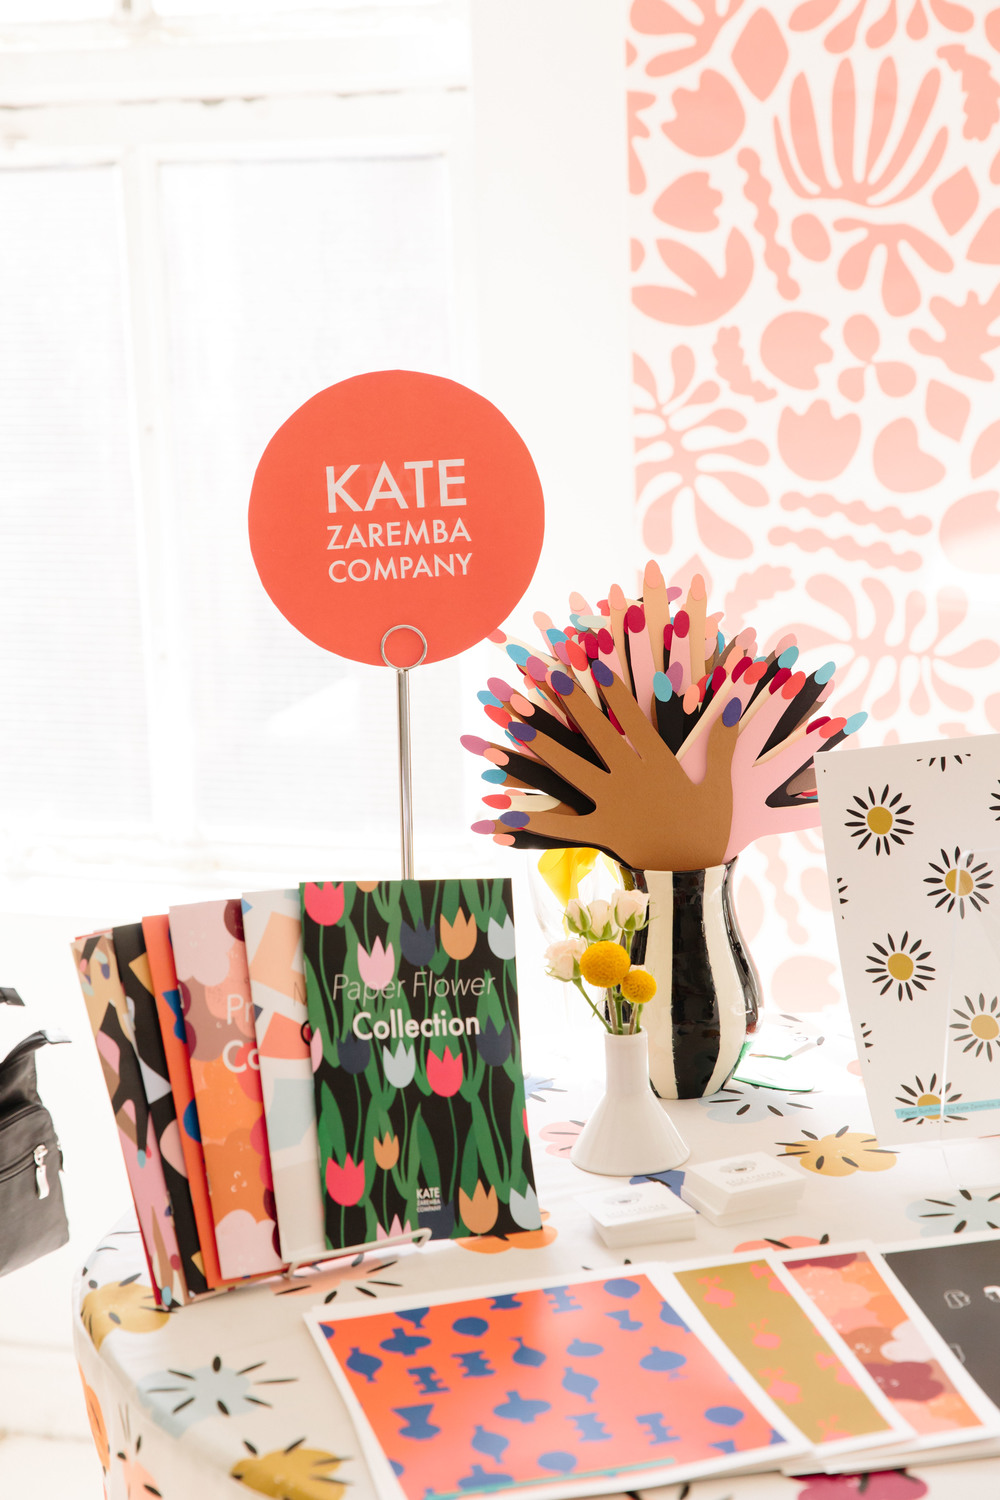 A fun, bright and charming display from Kate Zaremba - like Kate herself !